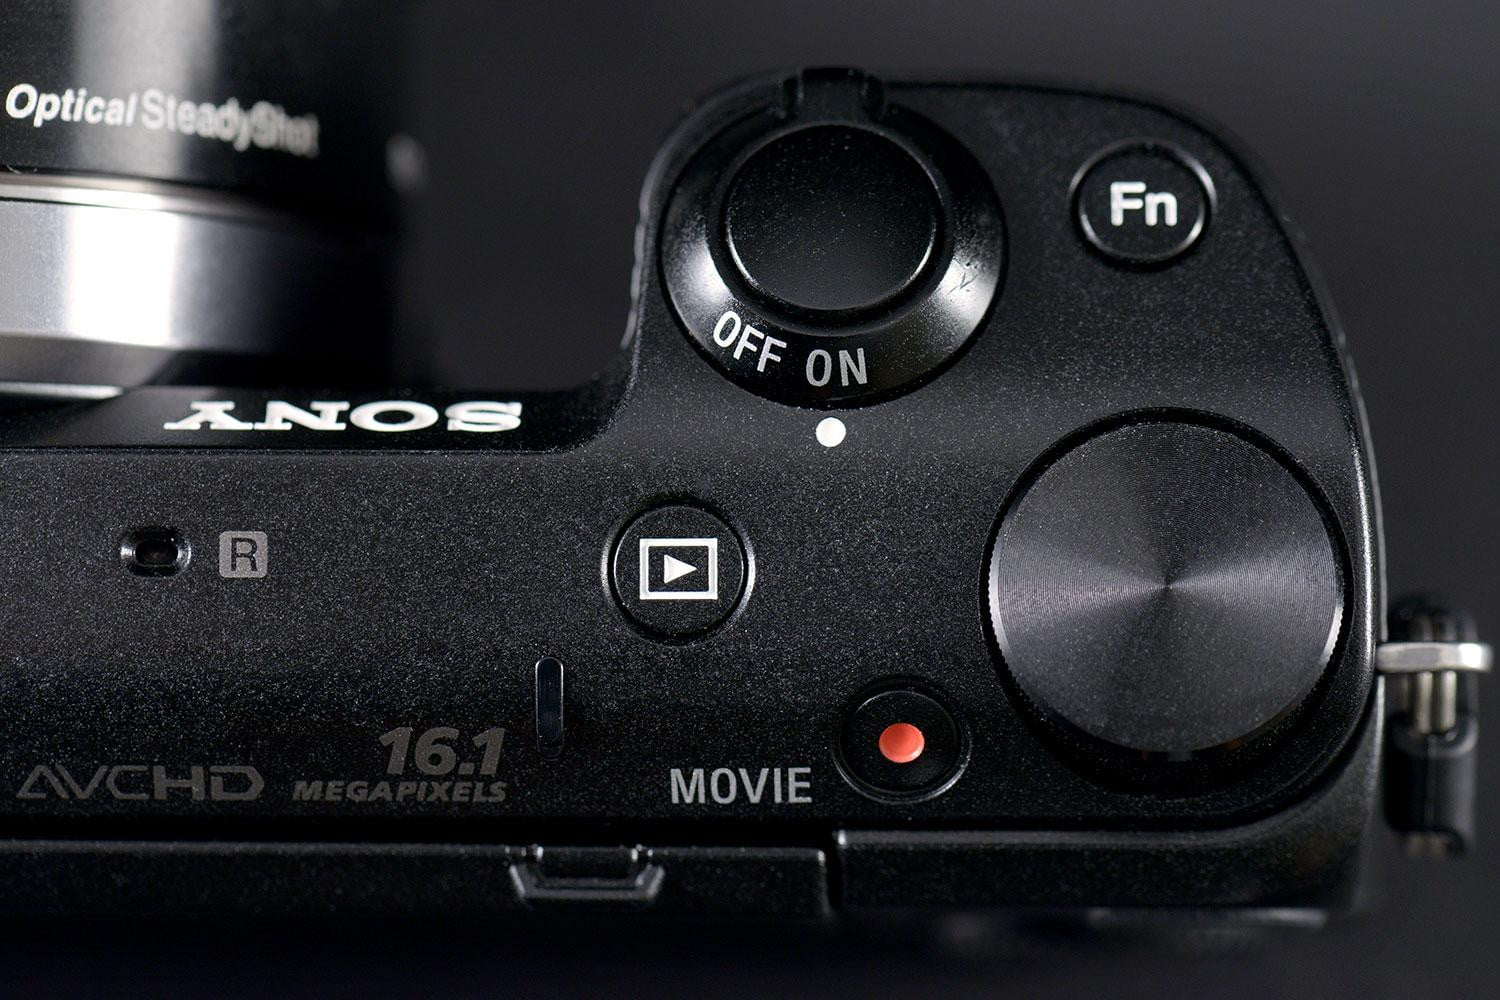 Sony Nex 5t Review Digital Trends Basic Camera Controls Unleashed Top Shutter